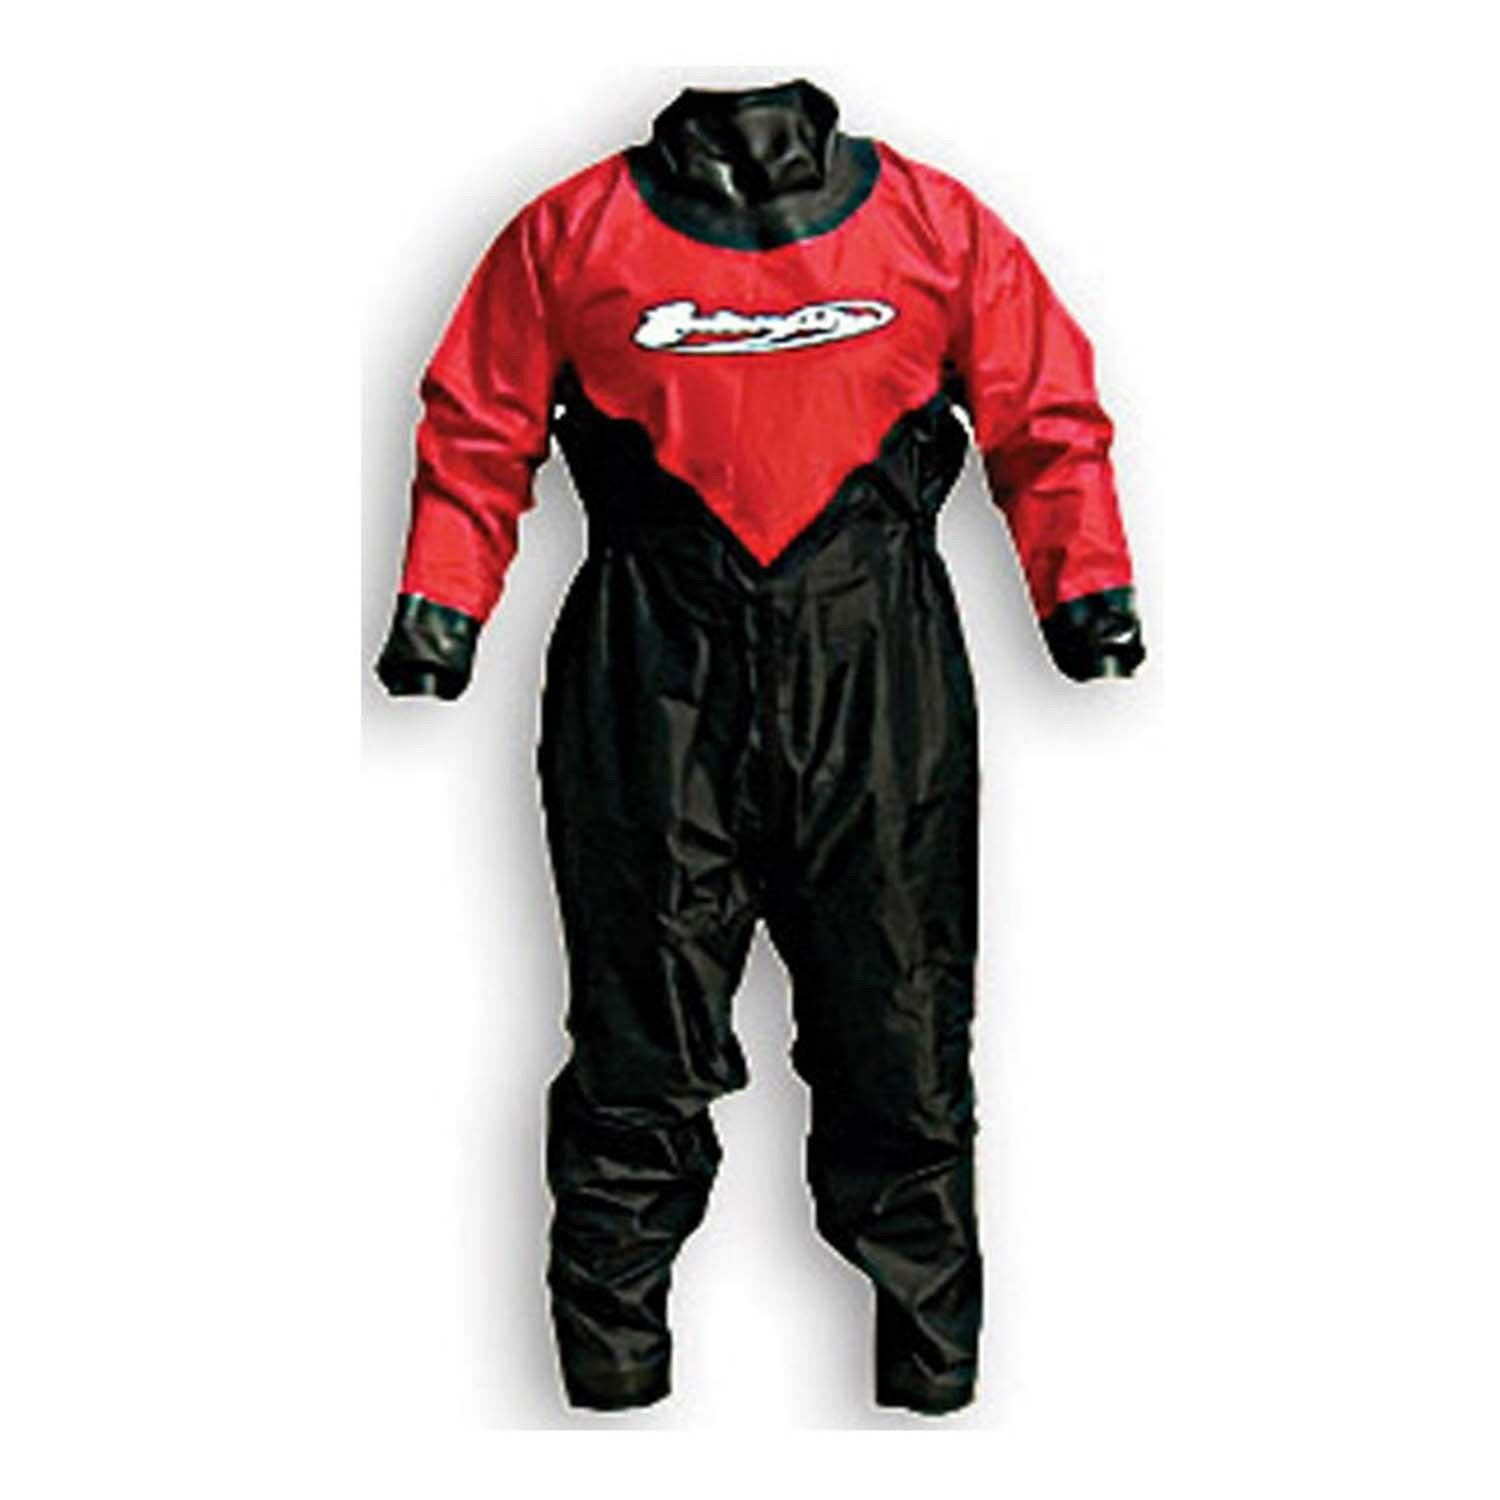 Intensity Nylon Waterski Wakeboard Dry Suit Size 2XL